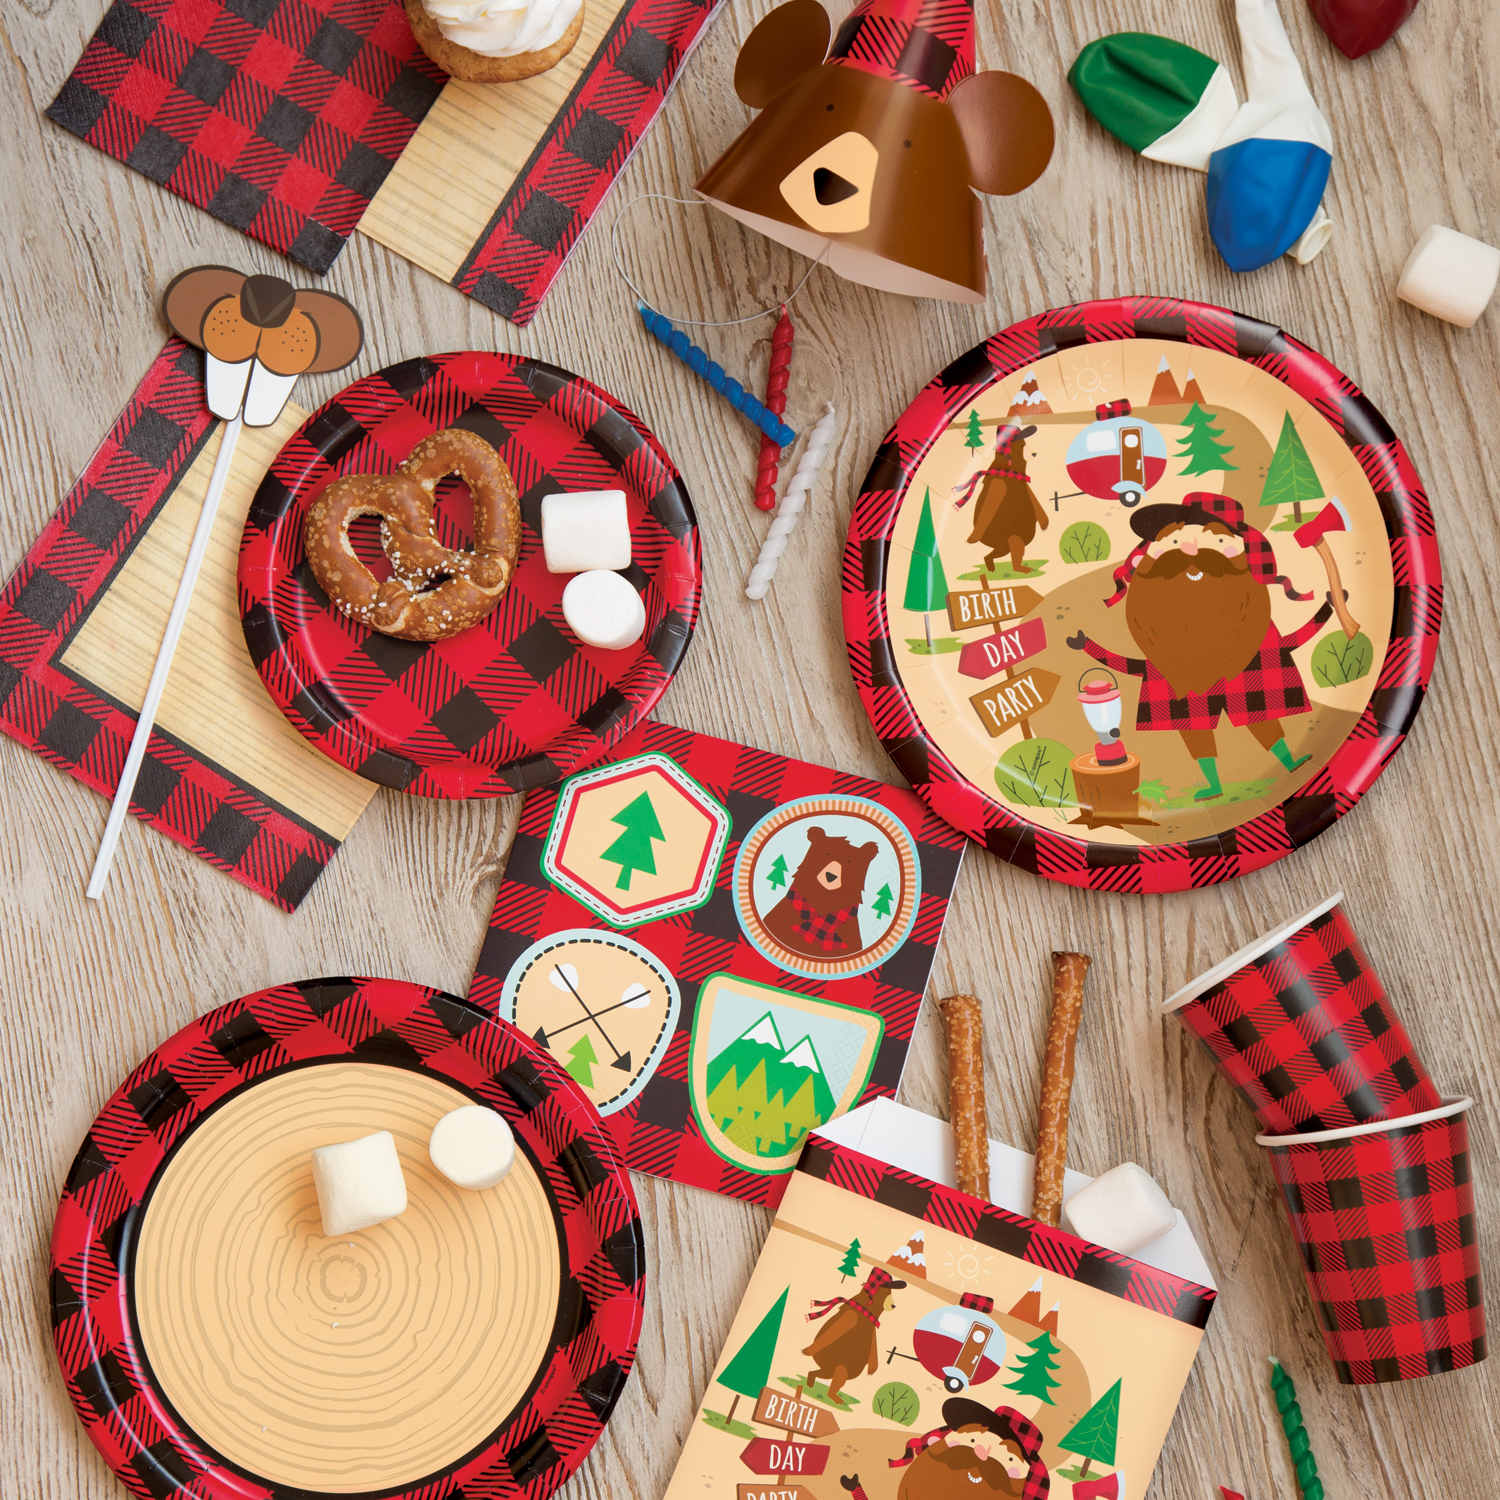 Buffalo Plaid Party Supplies - Lumberjack Party Ideas